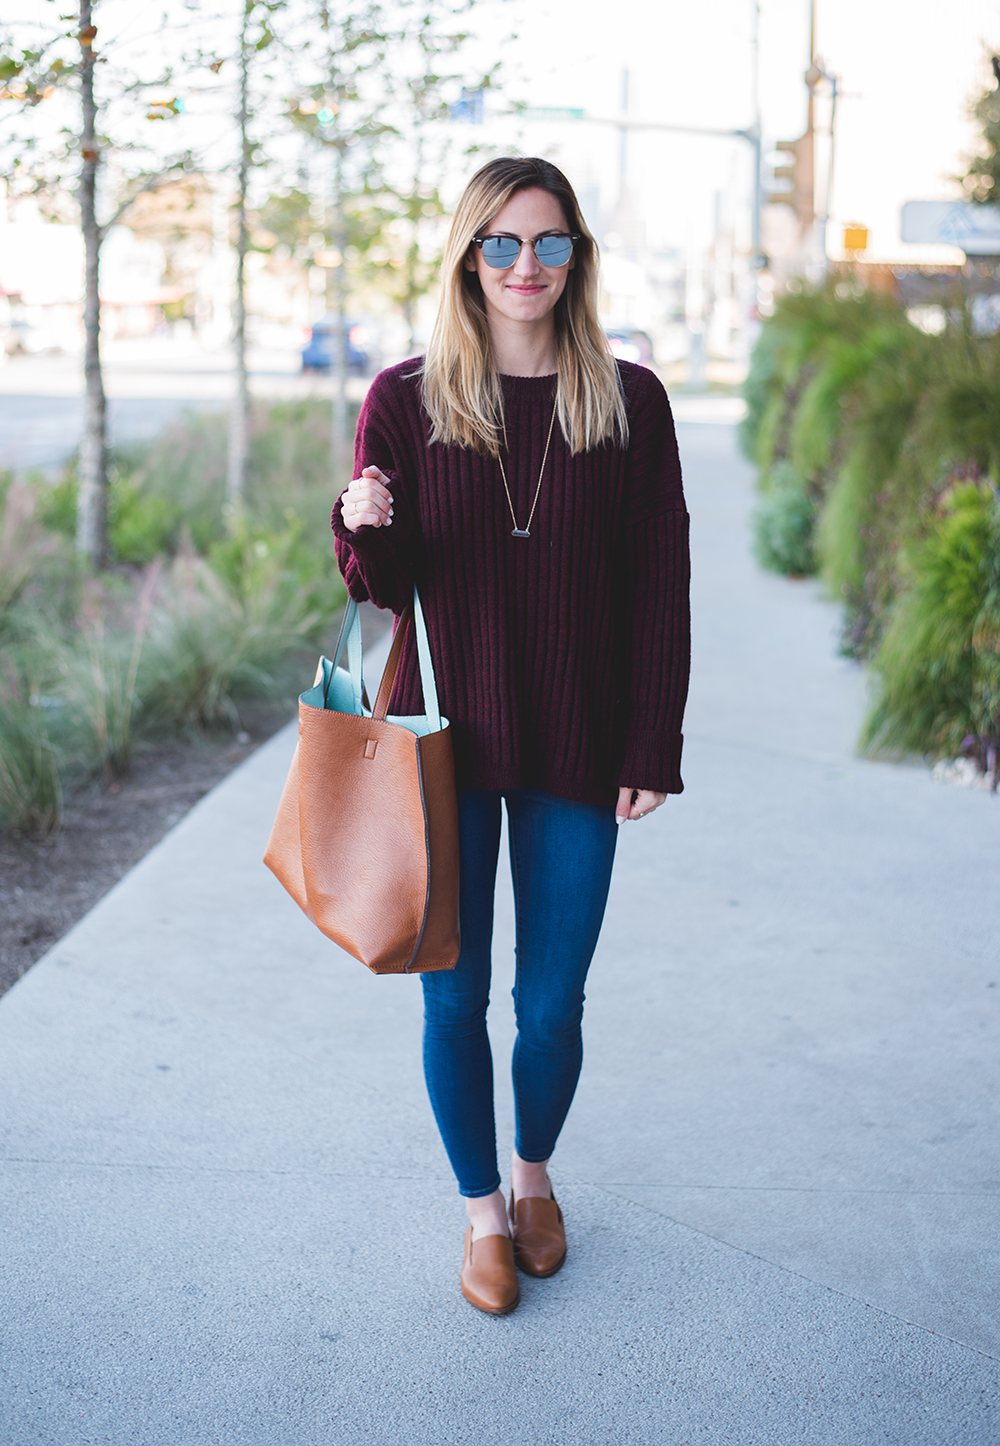 livvyland-blog-olivia-watson-oversize-wine-burgundy-knit-chunky-grandpa-sweater-austin-texas-fashion-blogger-olivia-watson-kathryn-frazer-photography-south-congress-hotel-madewell-tan-loafers-flats-12